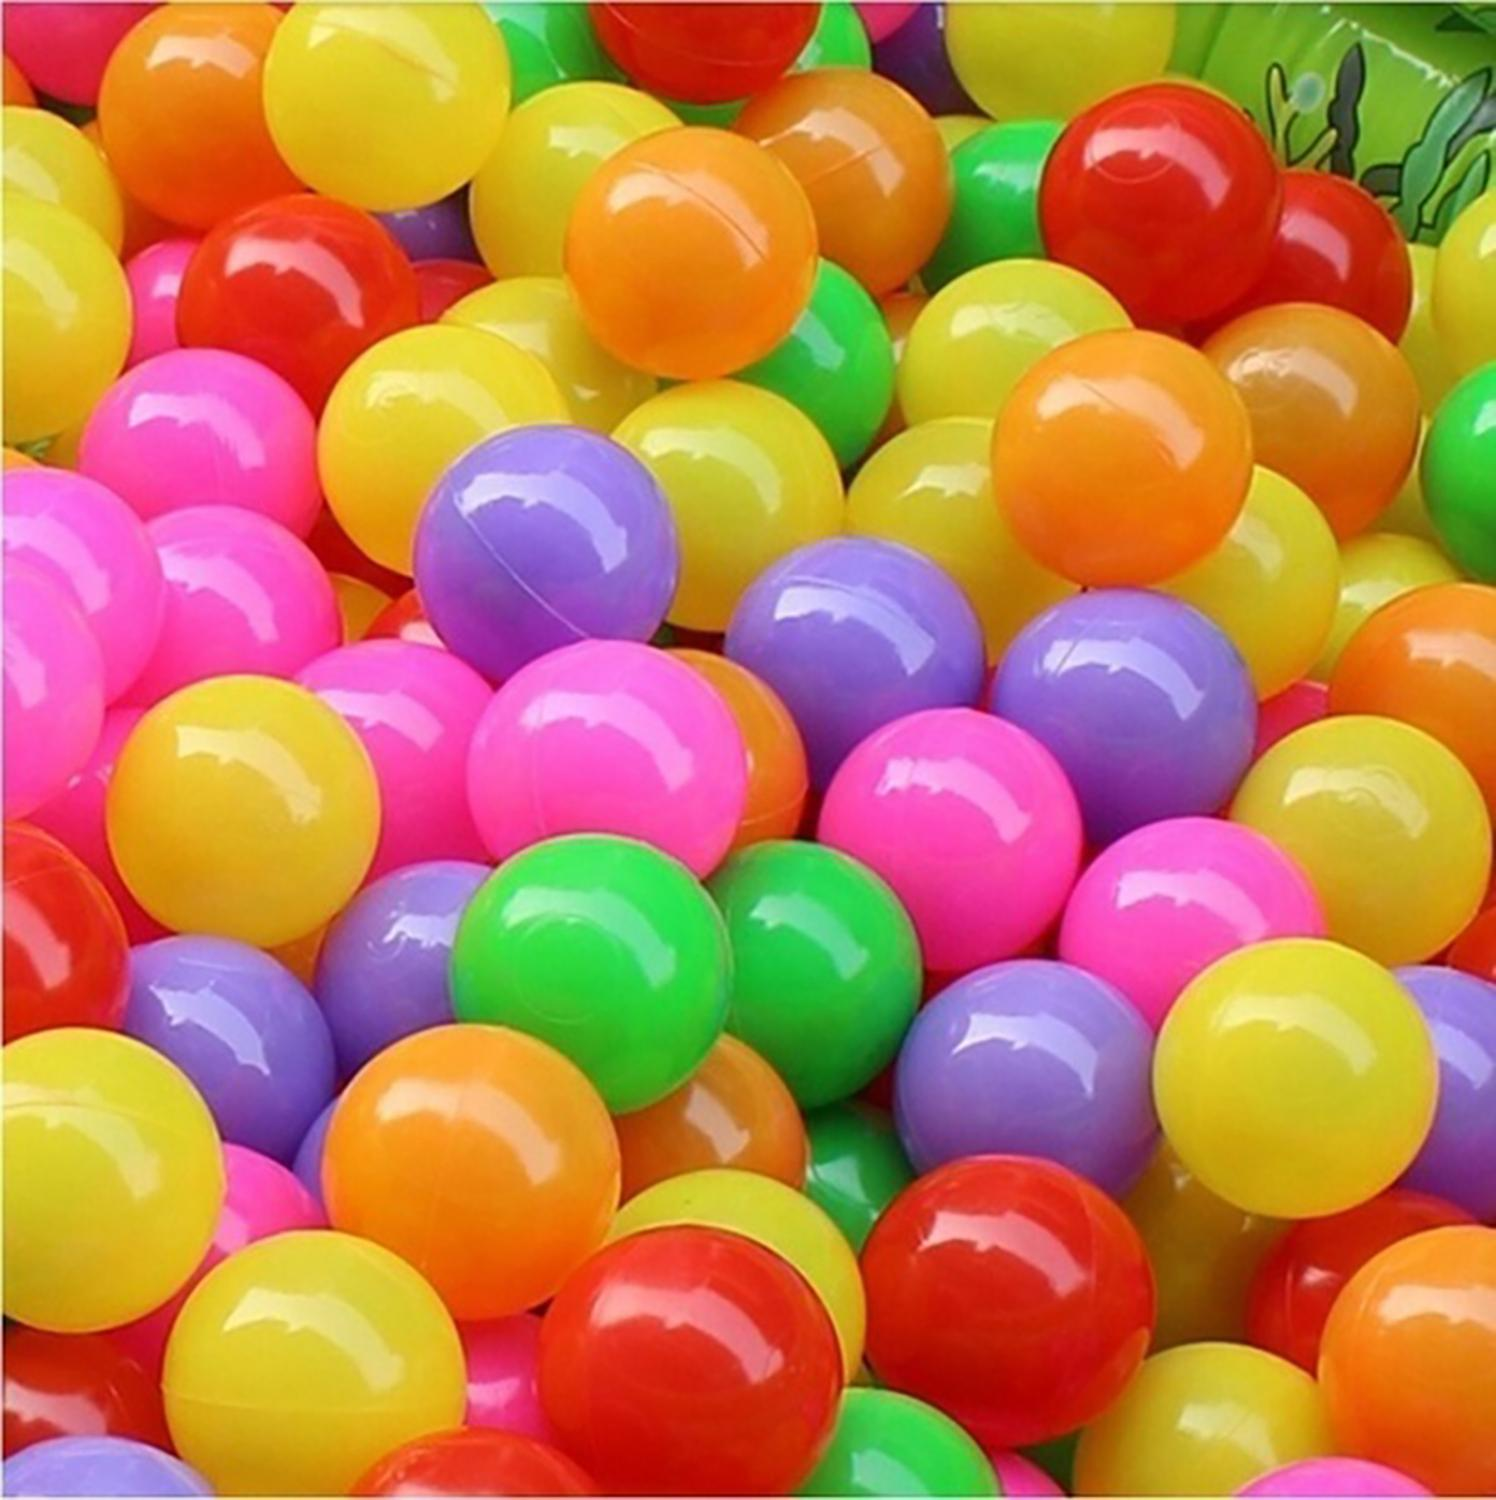 50 Pcs Baby Colorful Soft Plastic Water Pool Ocean Wave Ball Outdoor Funny Toys